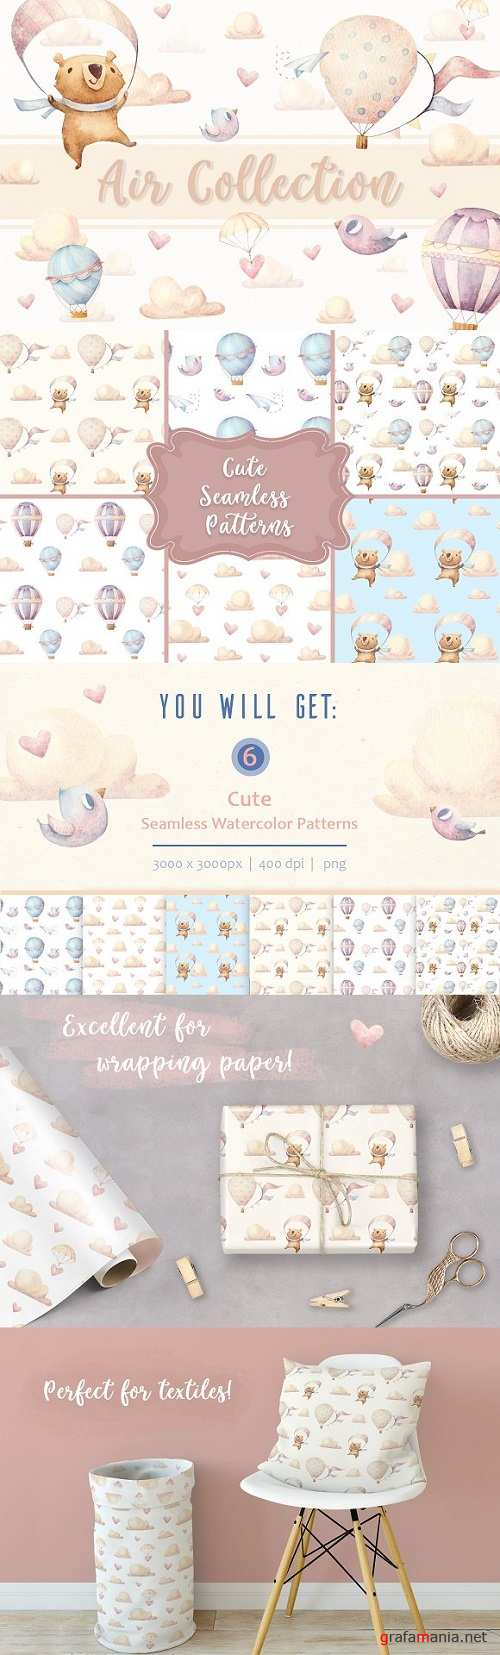 6 Seamless Patterns • Air Collection 2227772